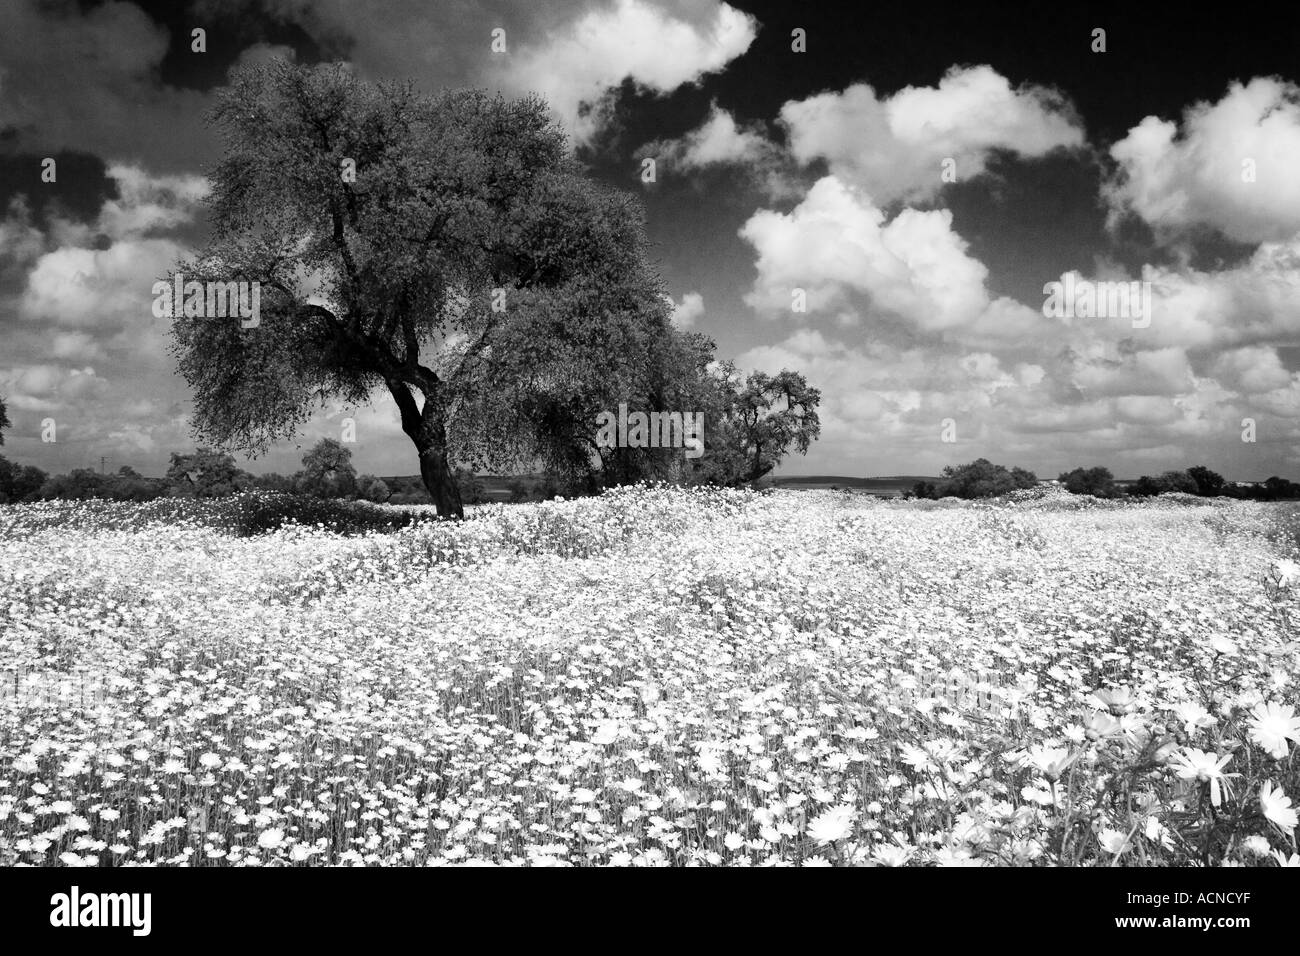 Andalusian black and white landscape with holm oak - Stock Image